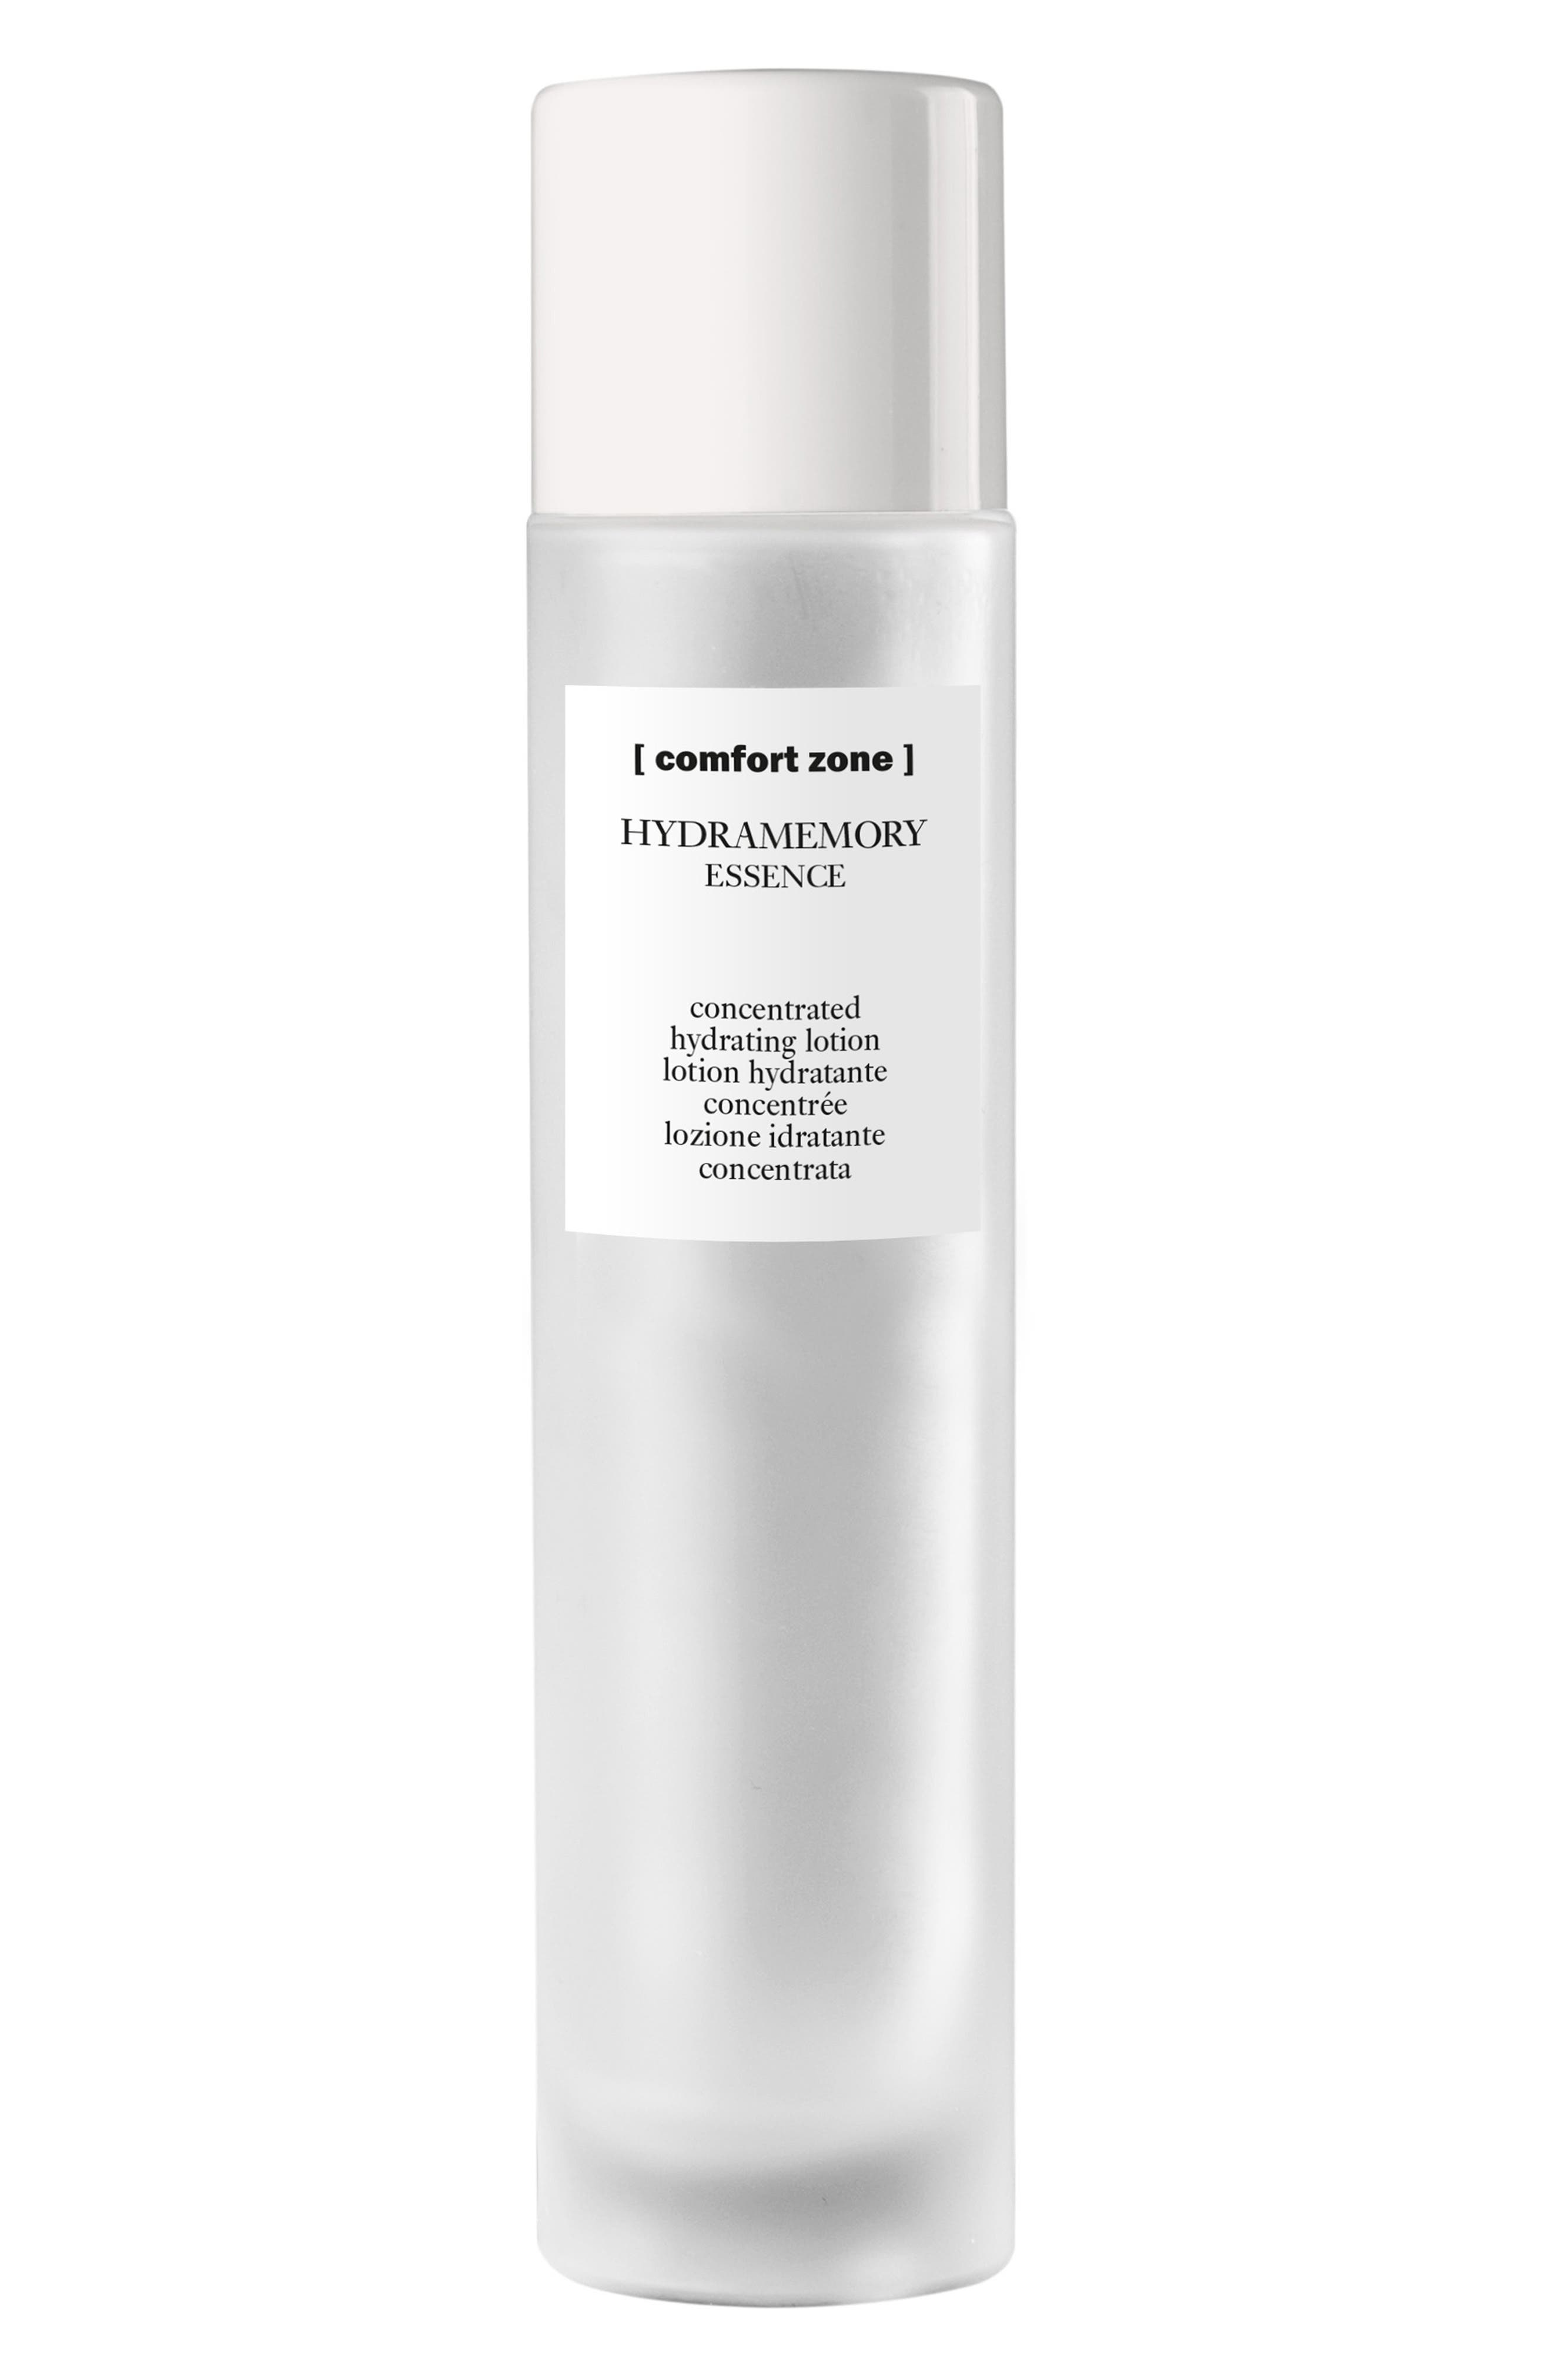 Hydramemory Essence Concentrated Hydrating Lotion